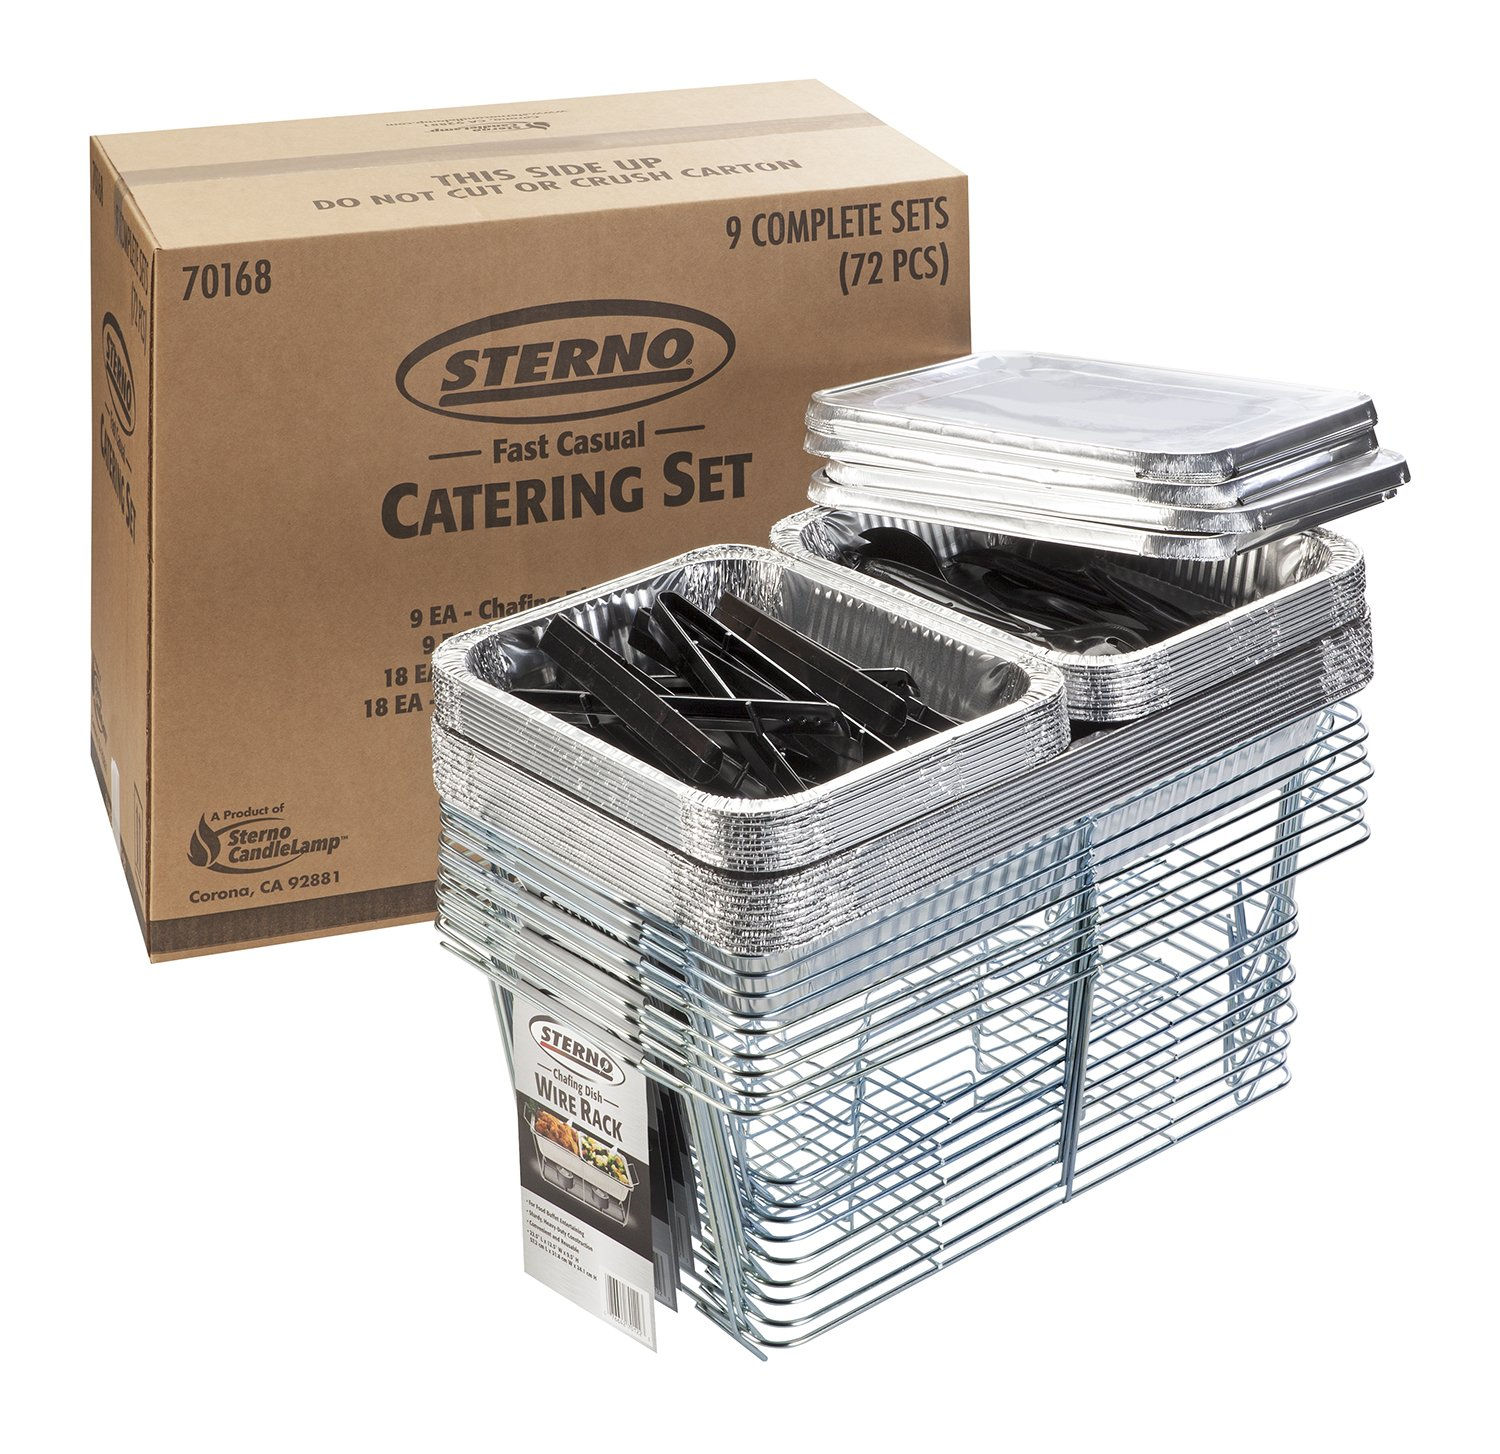 STERNO 72 PIECE CATERING SET